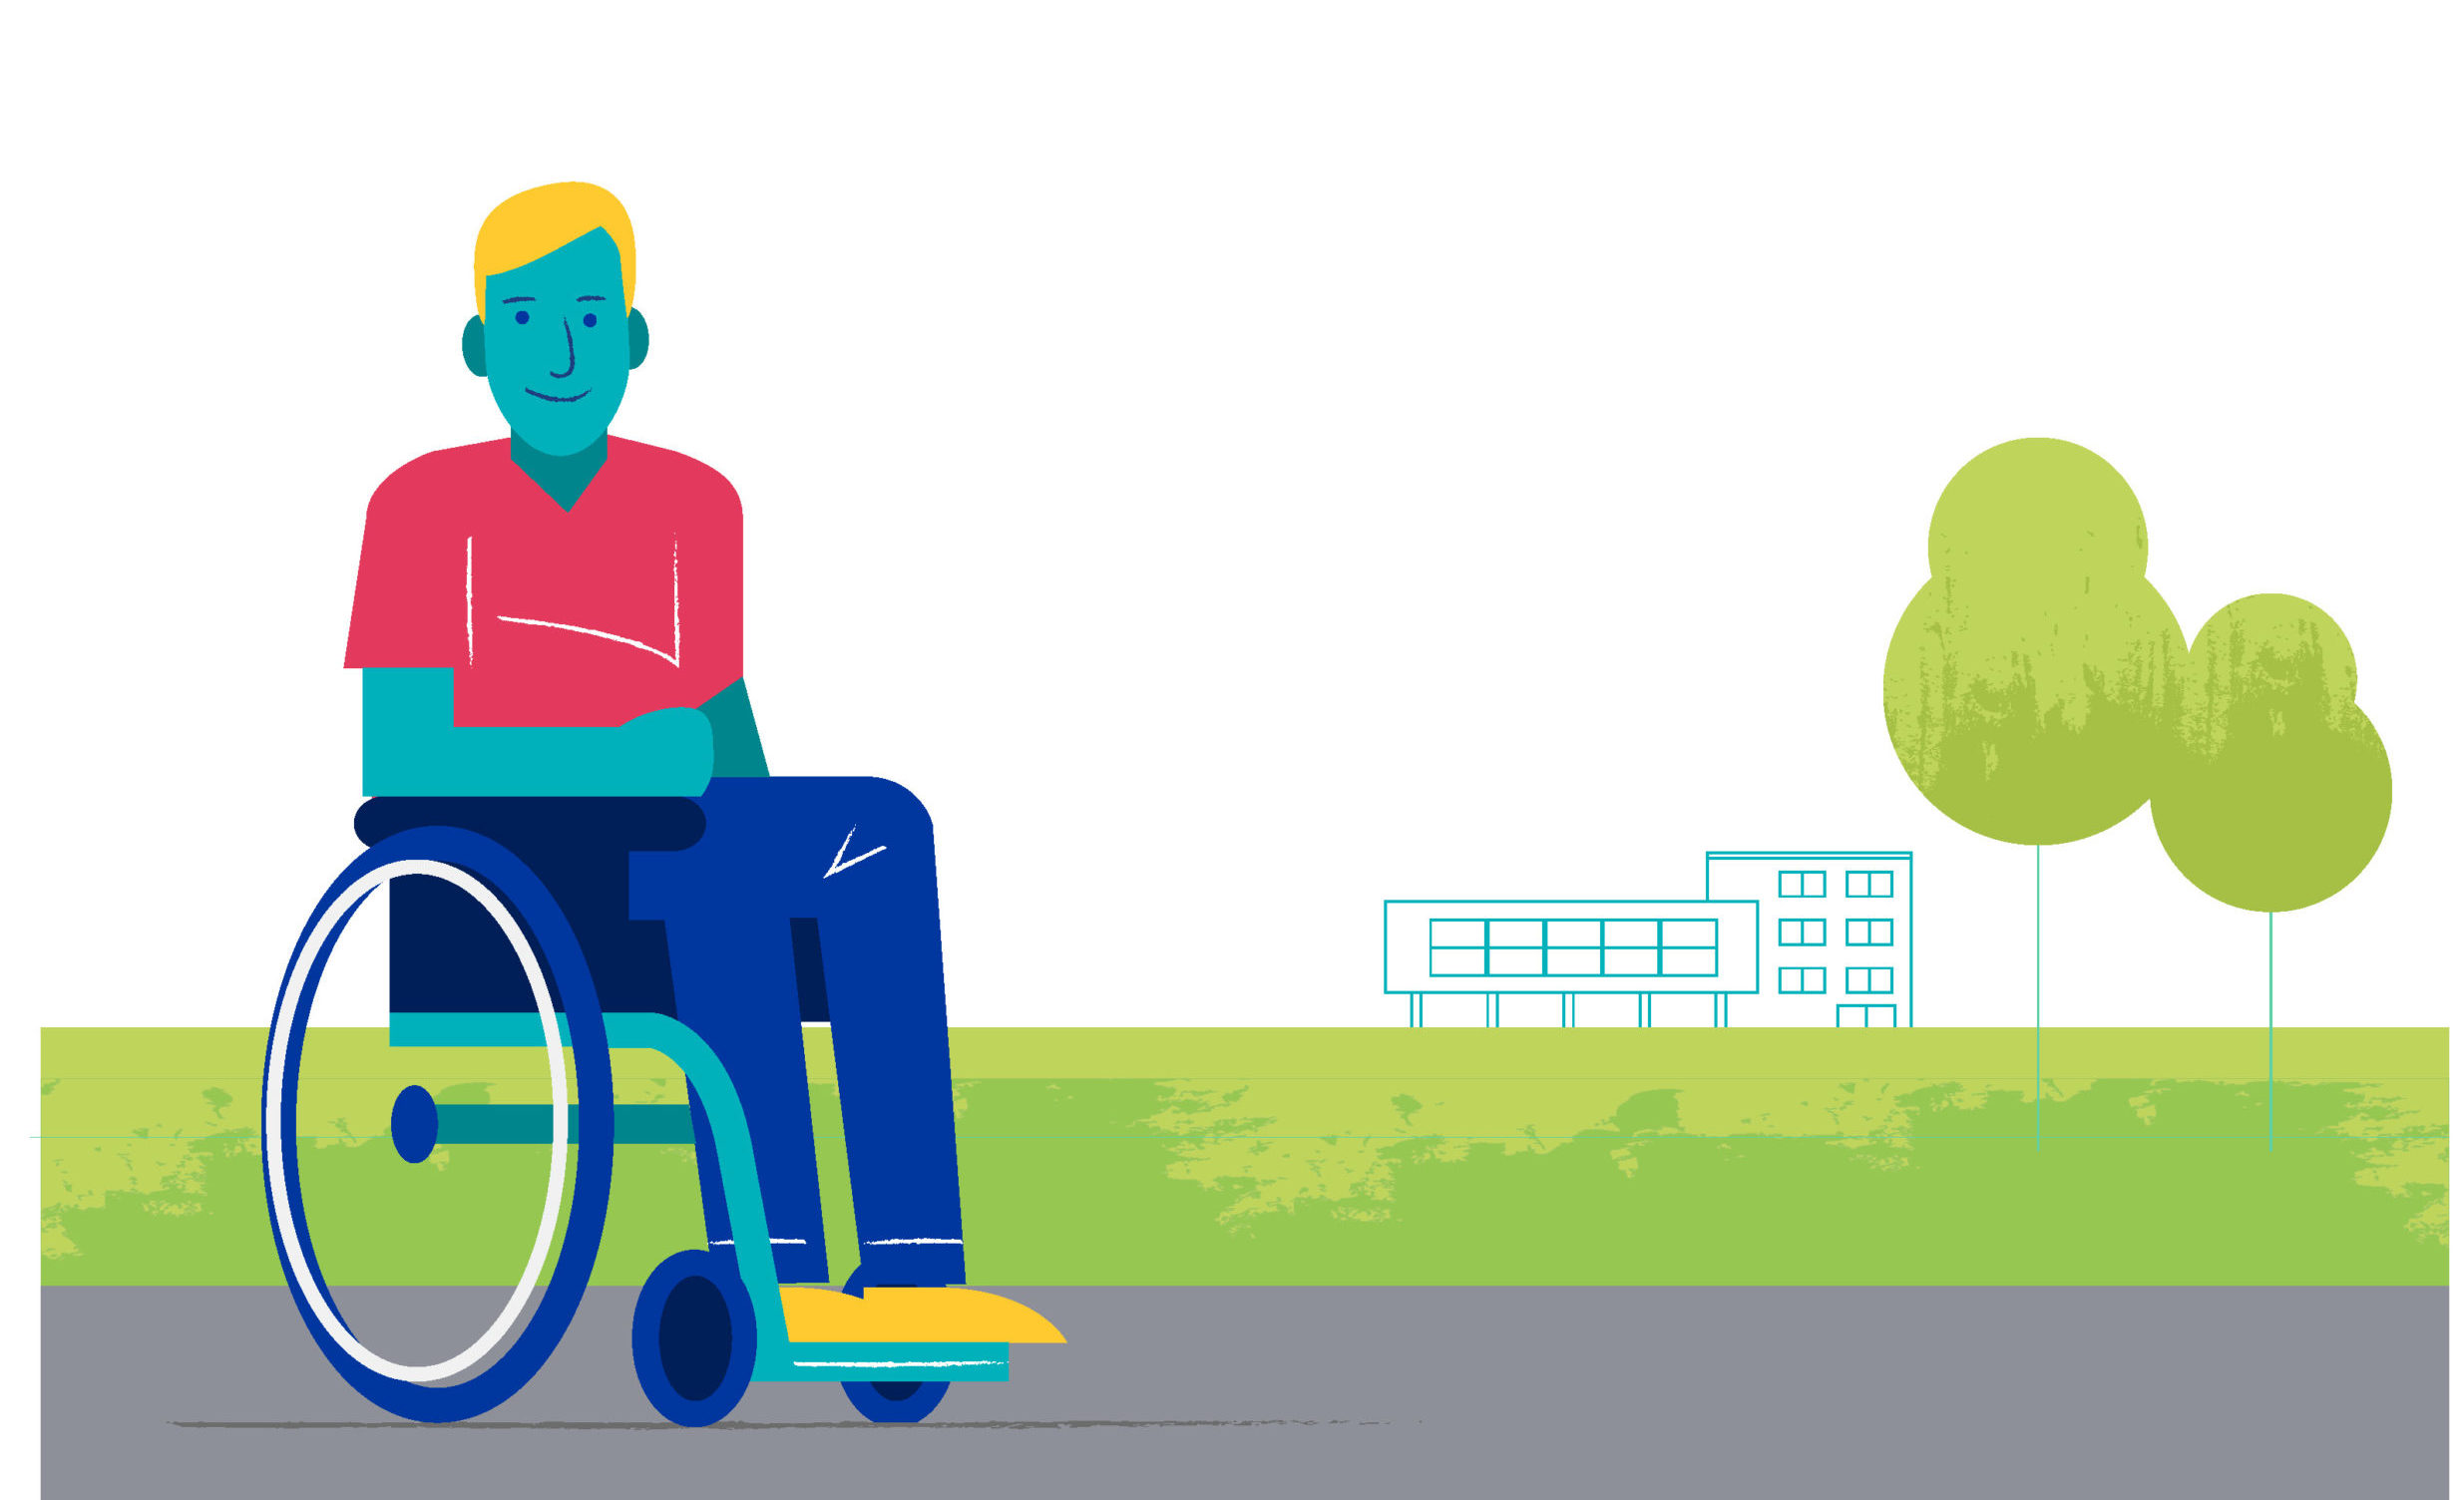 The image shows a person who may be disabled sitting in a wheelchair